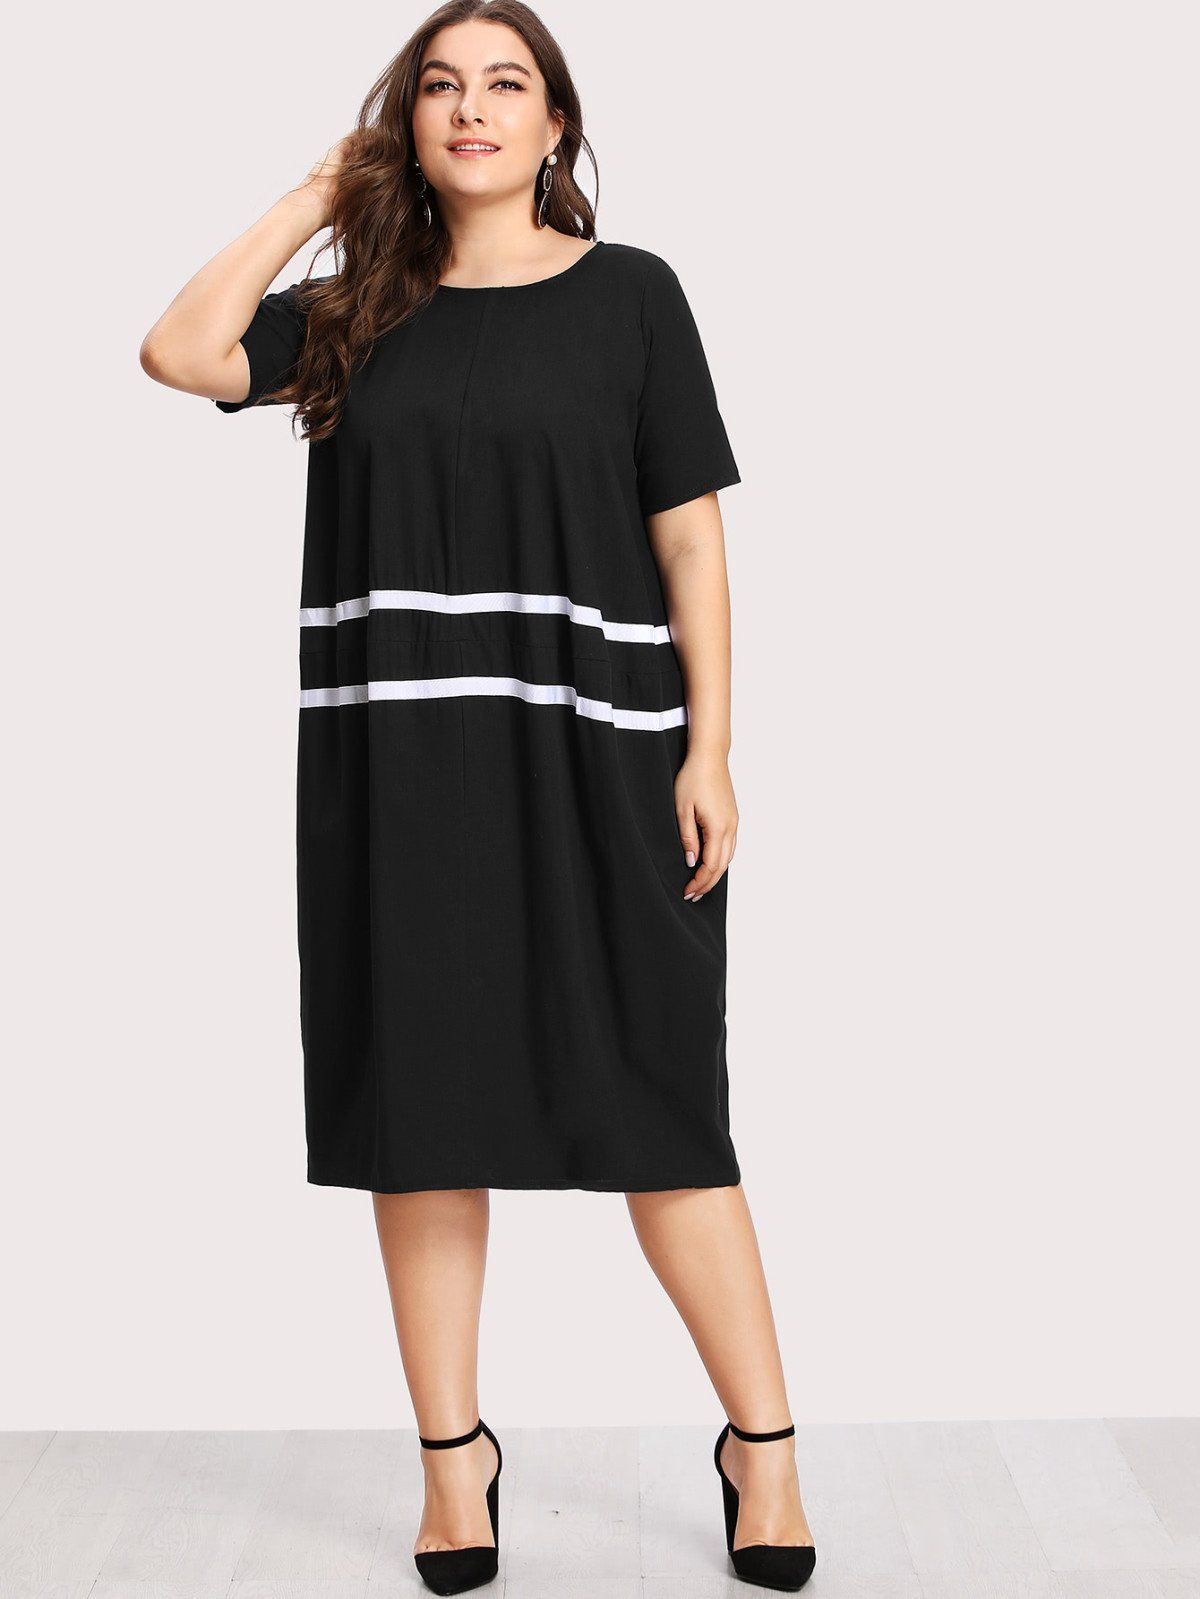 Contrast striped dress dress designs black fabric and short sleeves